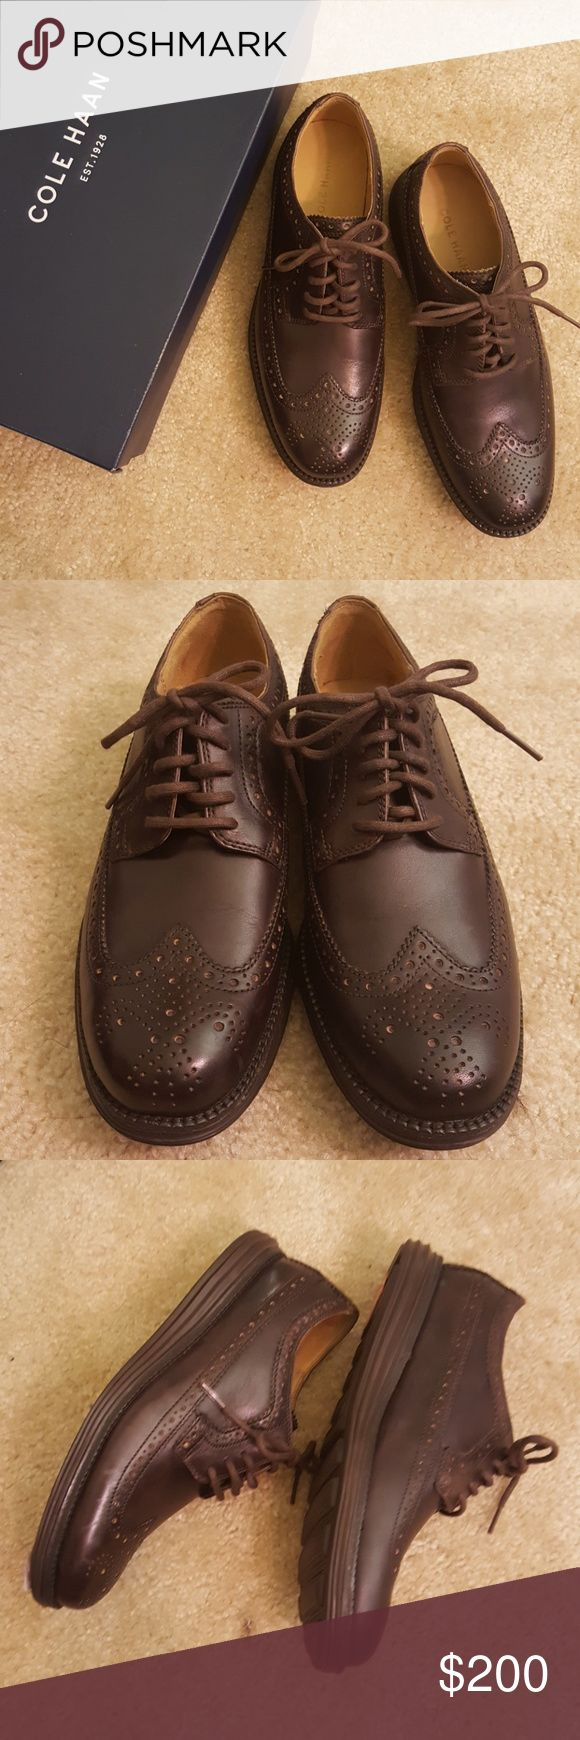 Cole Haan Oxford style shoes Cole Haan Shoes